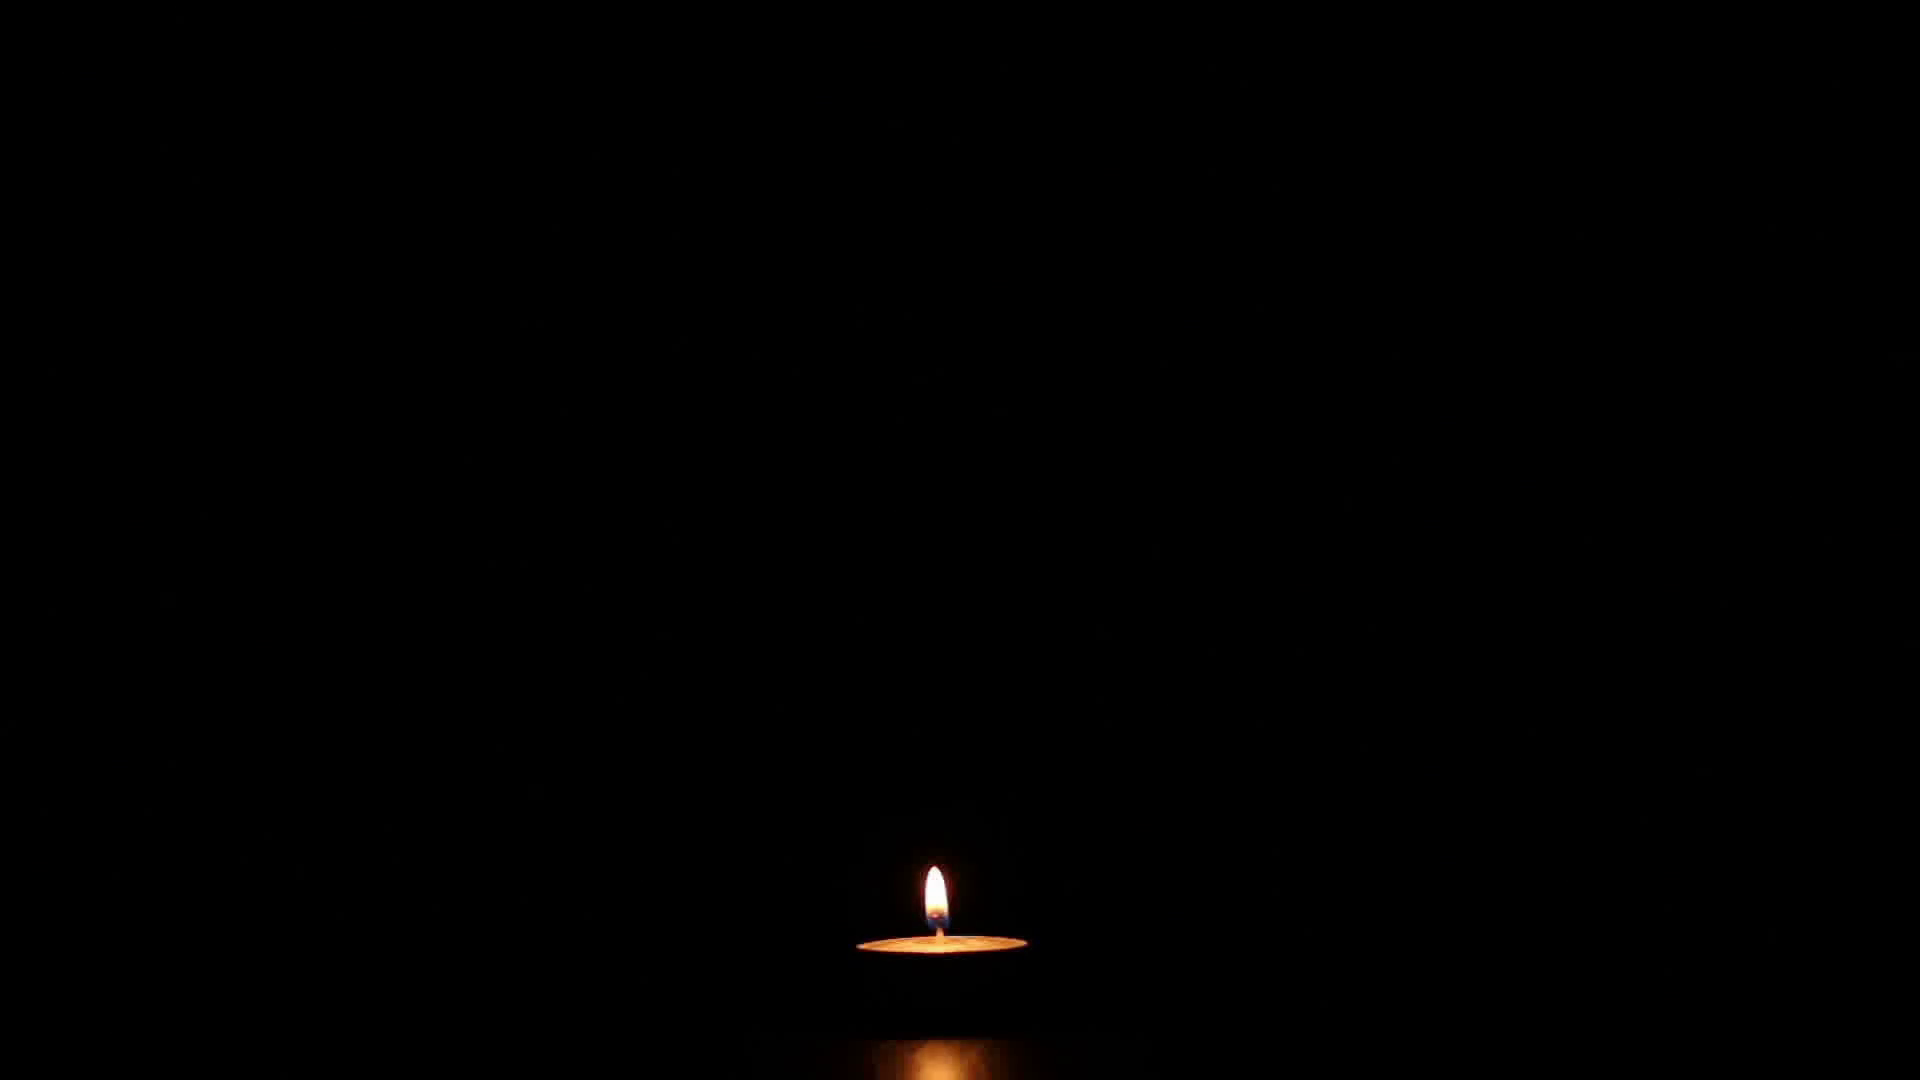 blowing-out-the-single-burning-candle-in-the-dark_sapstaaq_thumbnail-full01